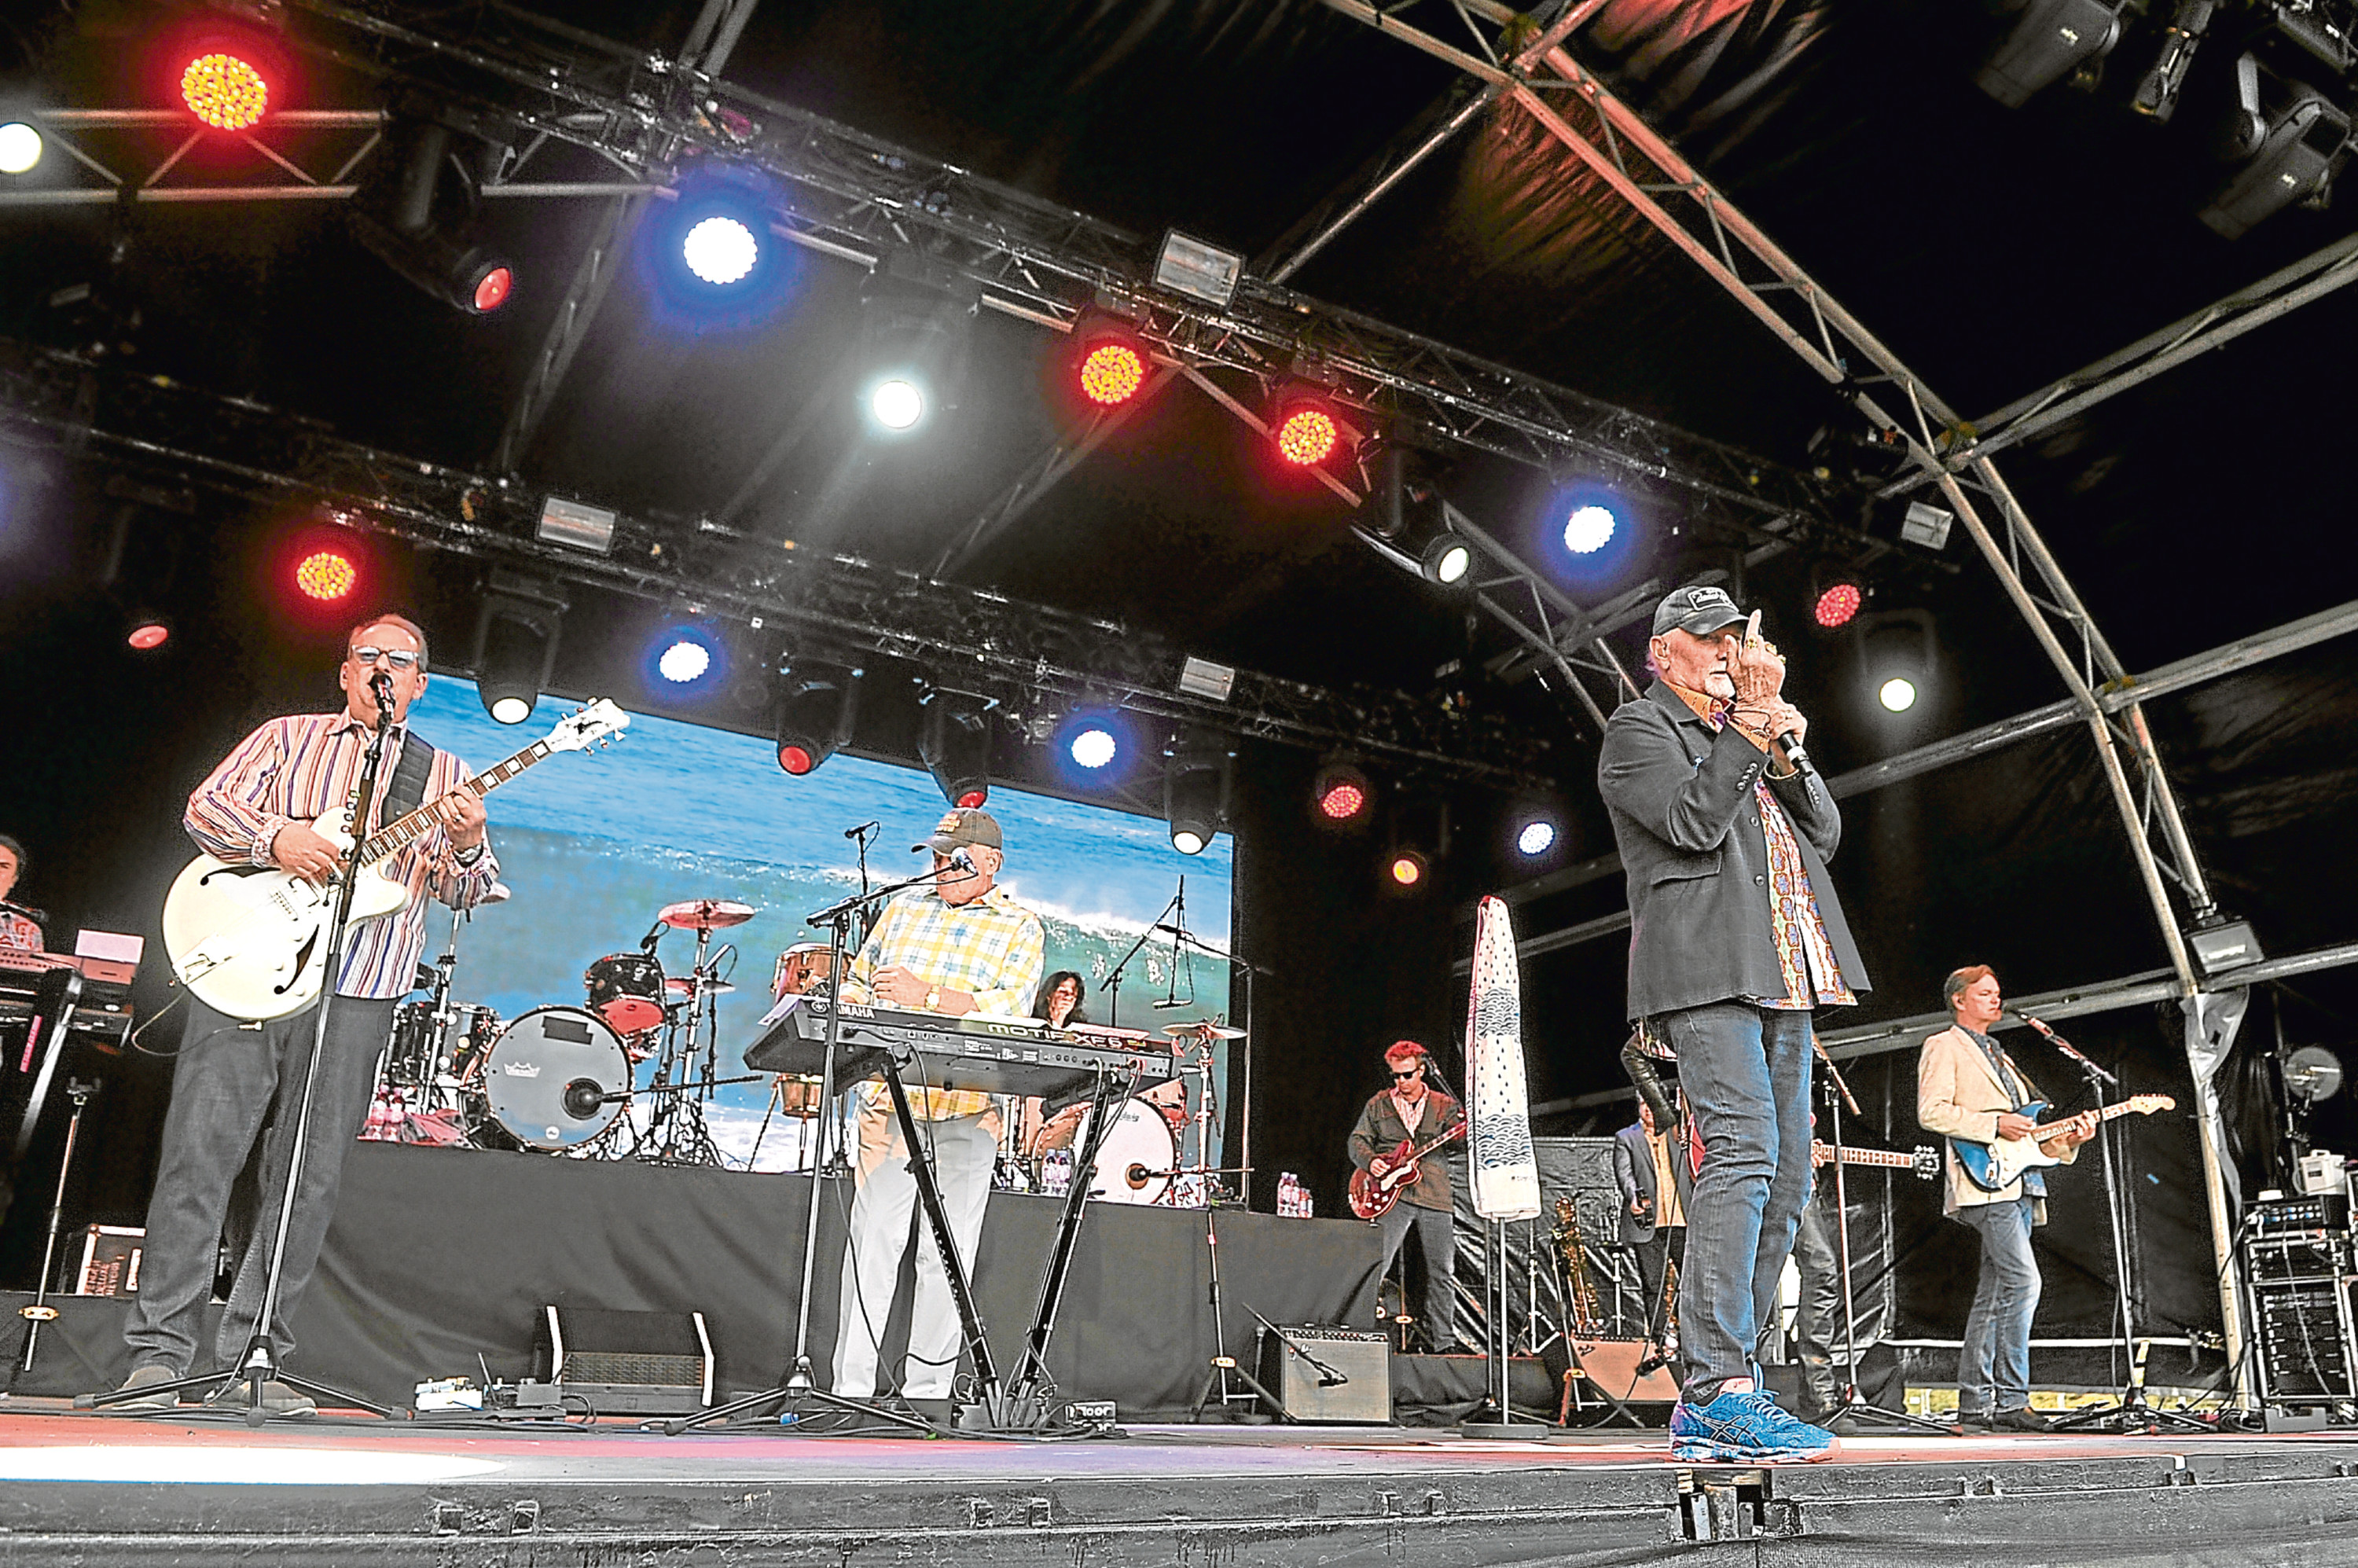 The Beach Boys were the headline act at the Montrose Music Festival in 2017.